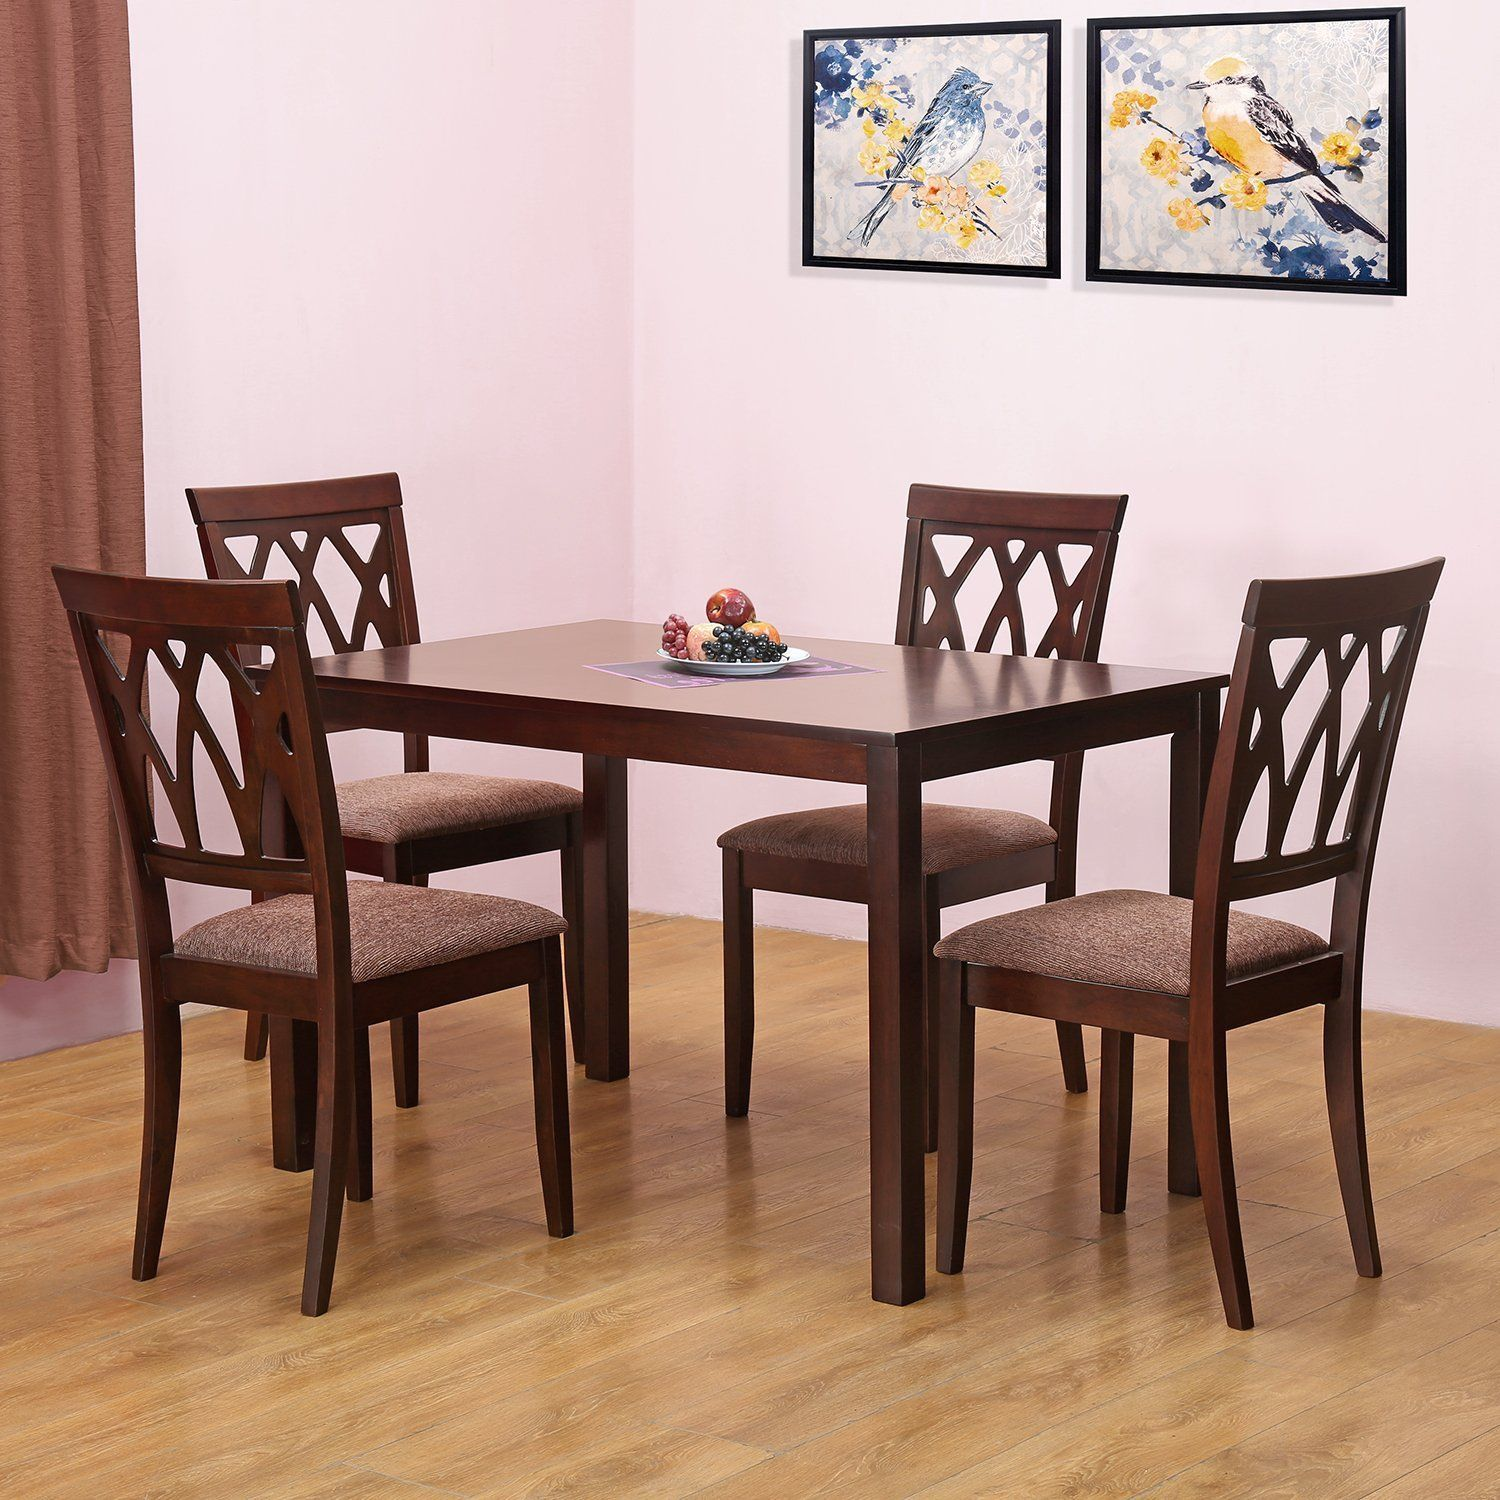 Home By Nilkamal Peak Four Seater Dining Table Set Beige Best Home And Kitchen Store 4 Seater Dining Table Four Seater Dining Table Dining Room Sets